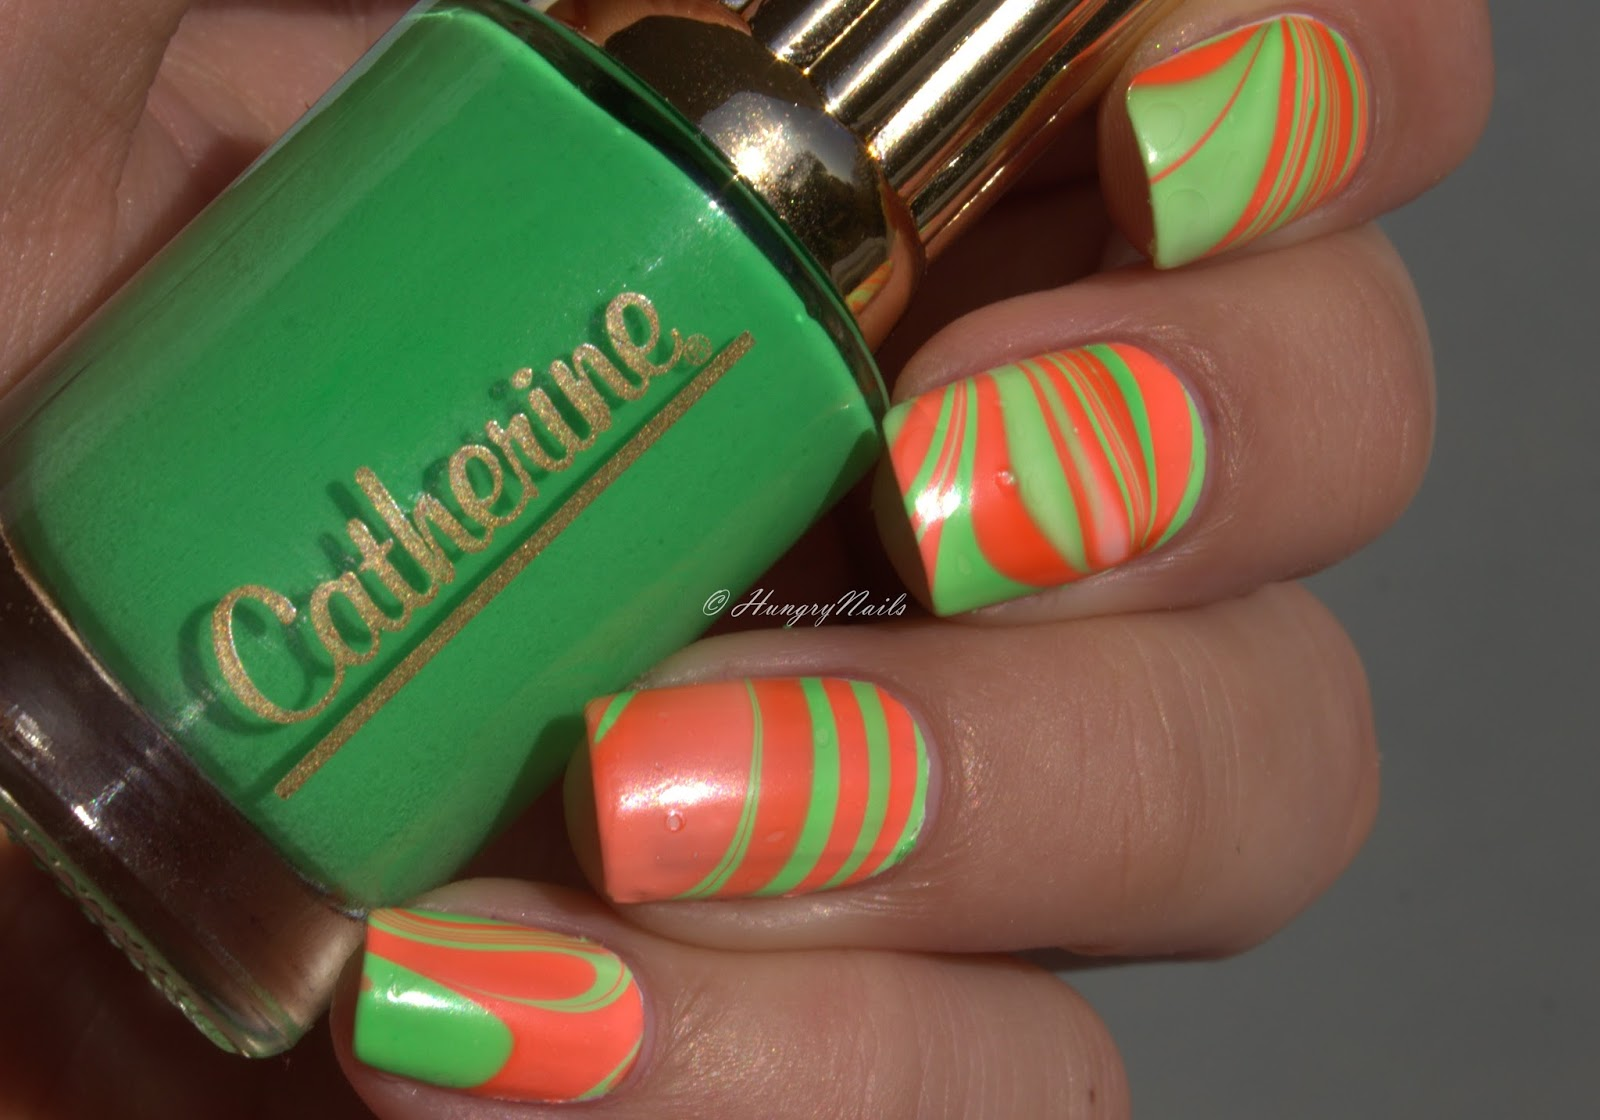 http://hungrynails.blogspot.de/2016/05/catherine-neon-water-marble-nails.html